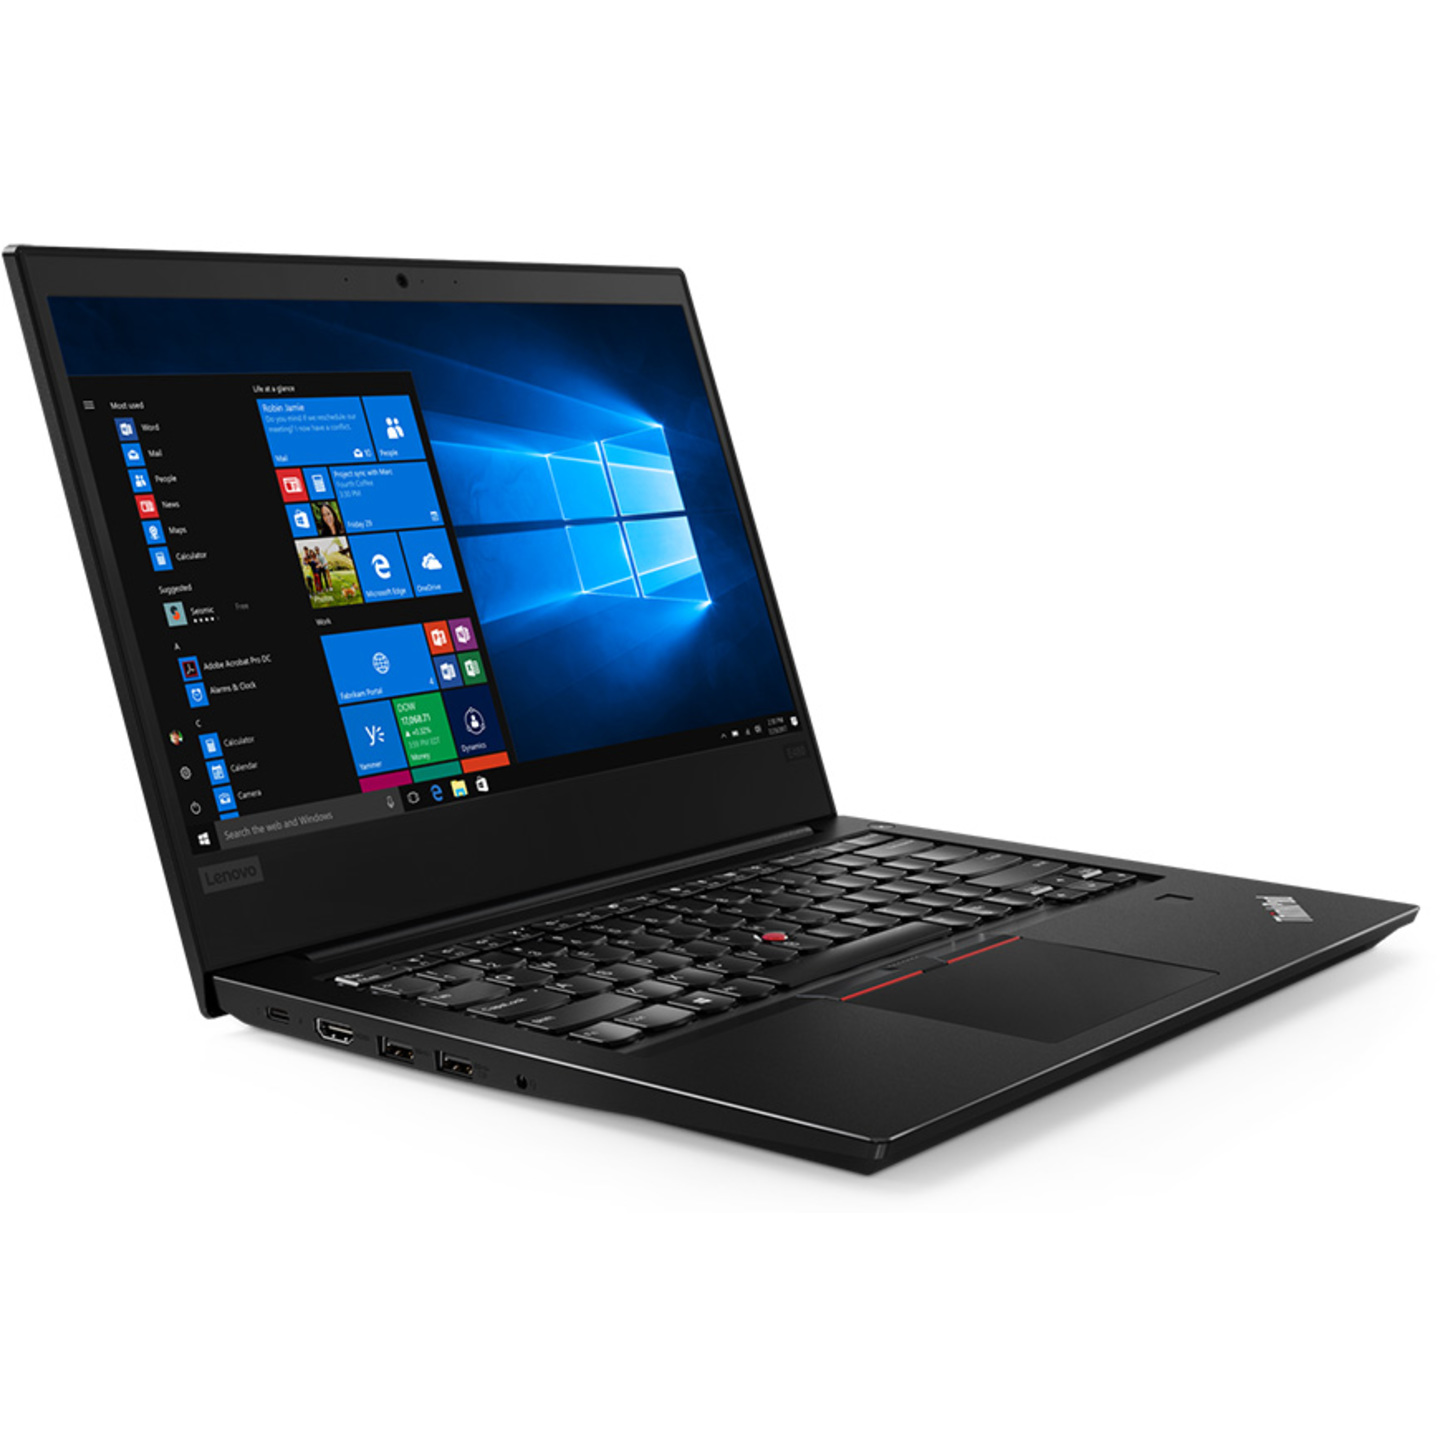 Lenovo ThinkPad E490s: Intel Core i7-8650U Processor